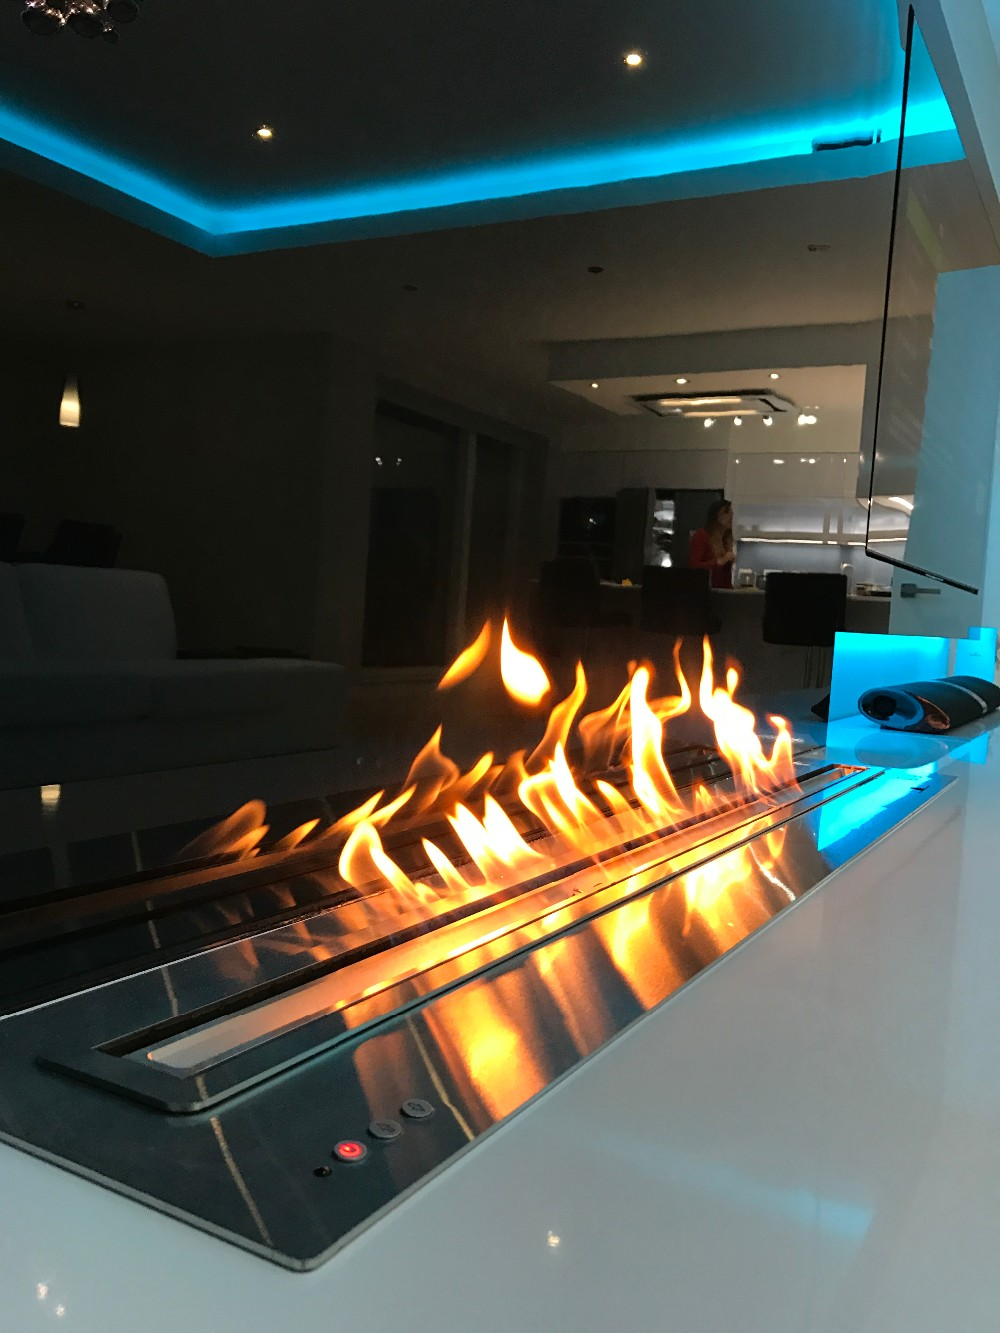 Hot Sale 48 Inches Inno Bioetanol Wifi Knx Home Automation Fireplace